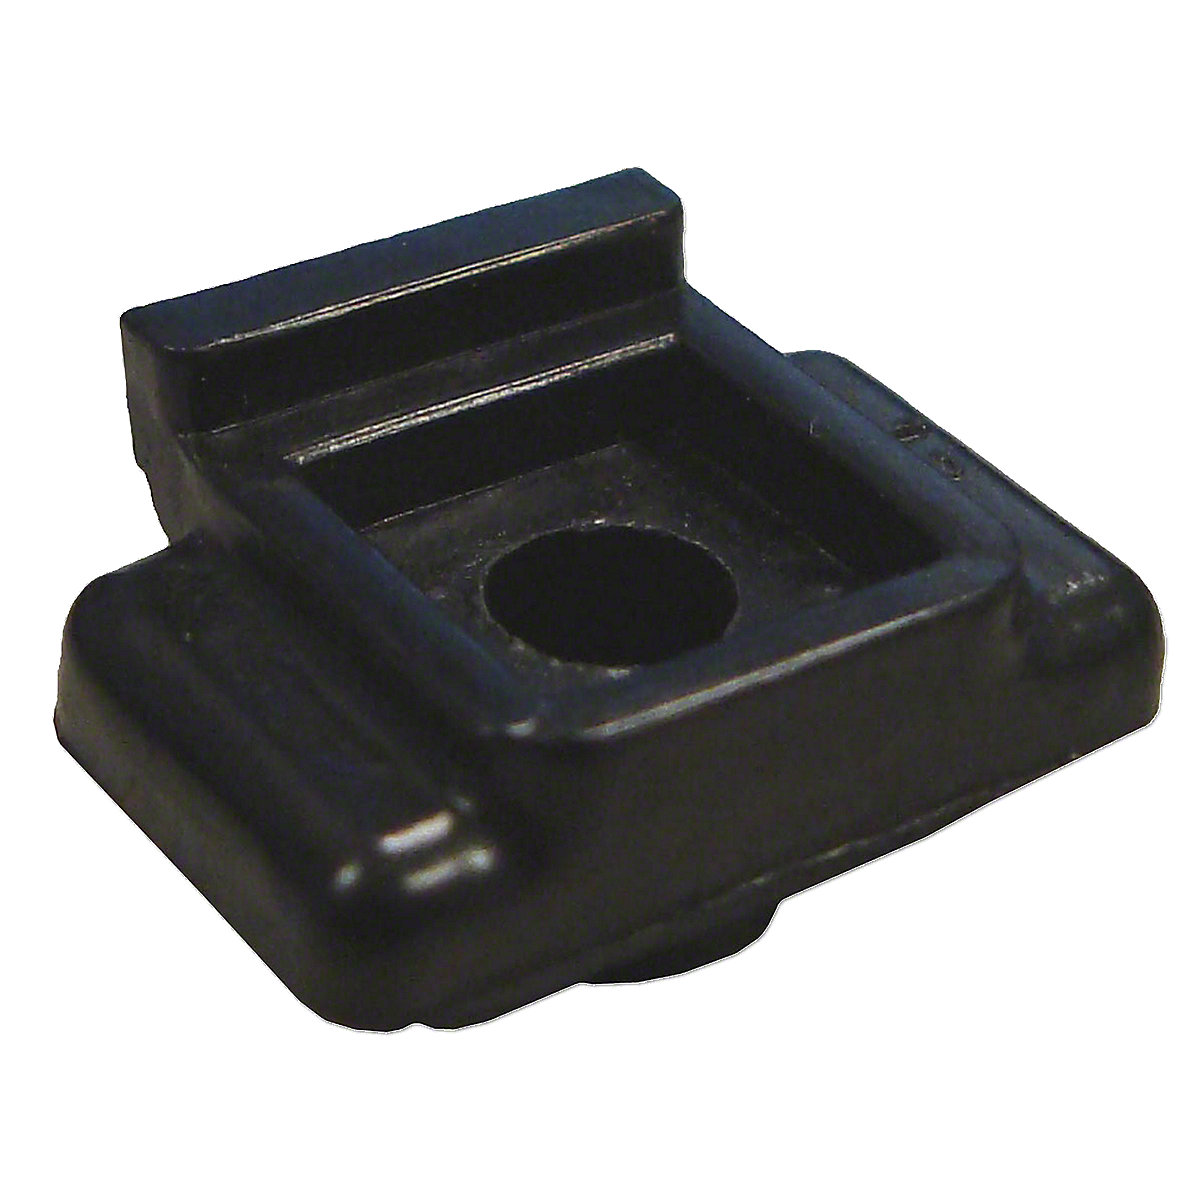 IHS974 - INSULATOR (FOR IH DISTRIBUTOR